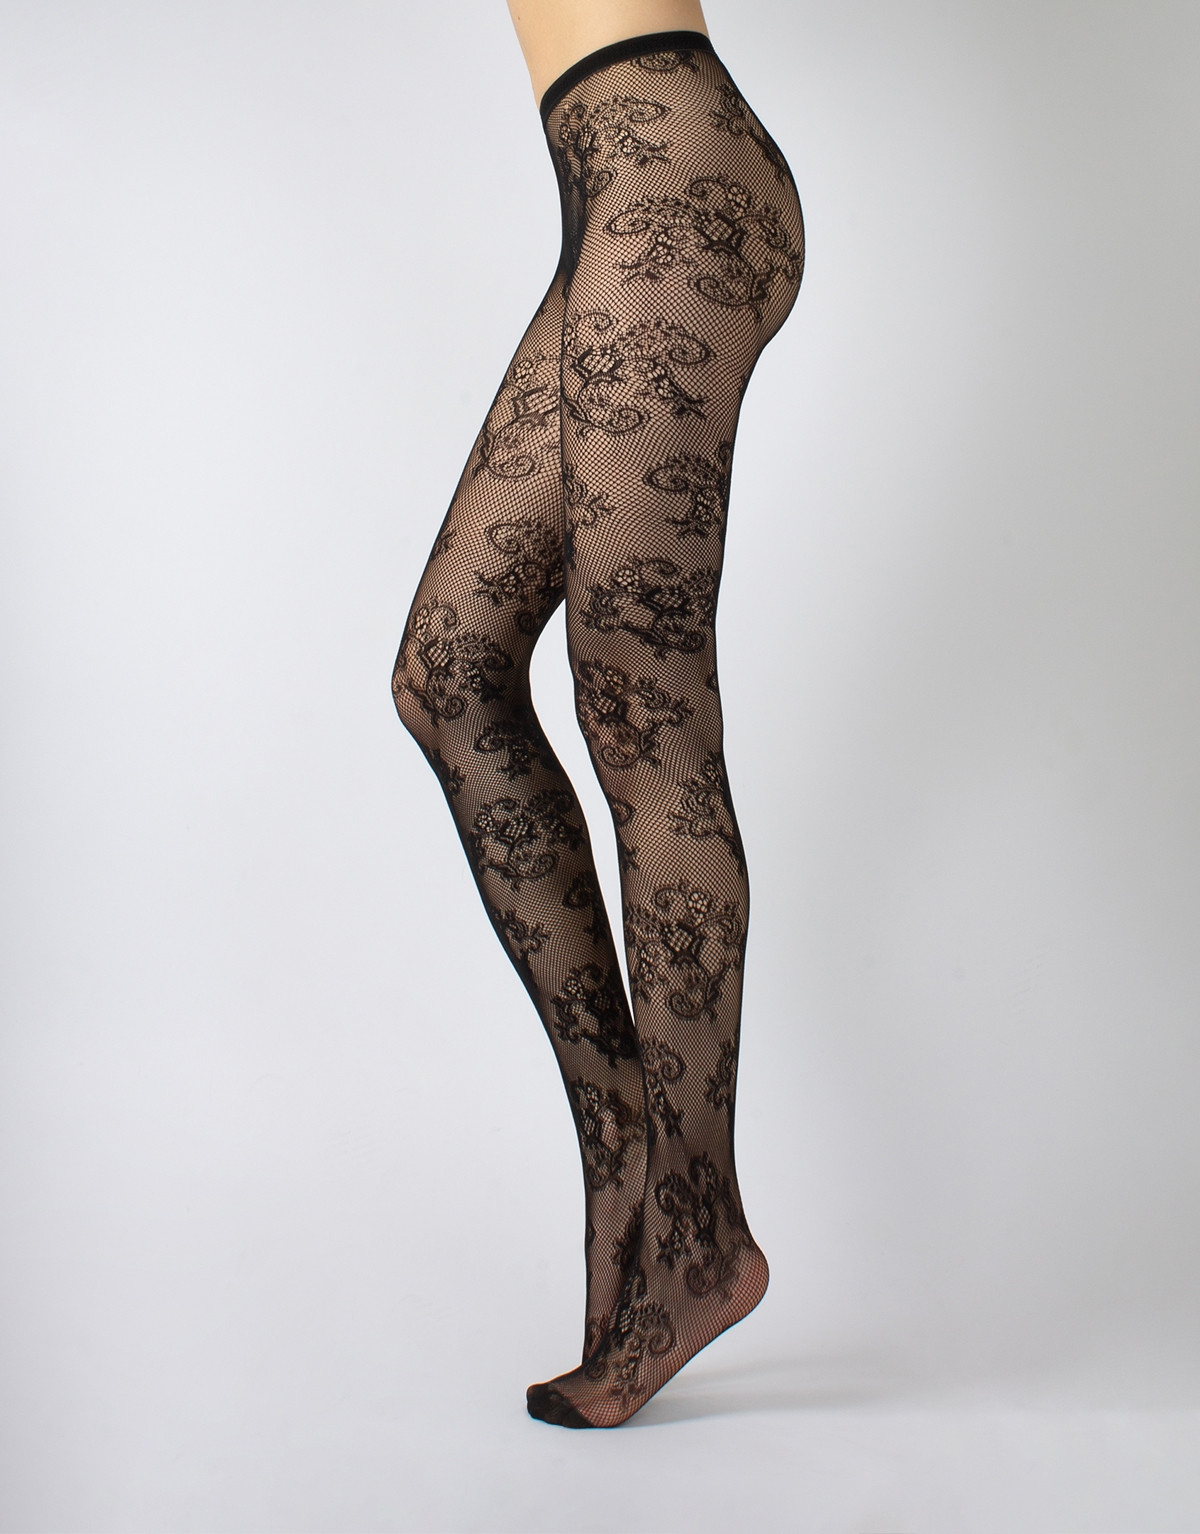 LACE FISHNET TIGHTS WITH FLORAL PATTERN